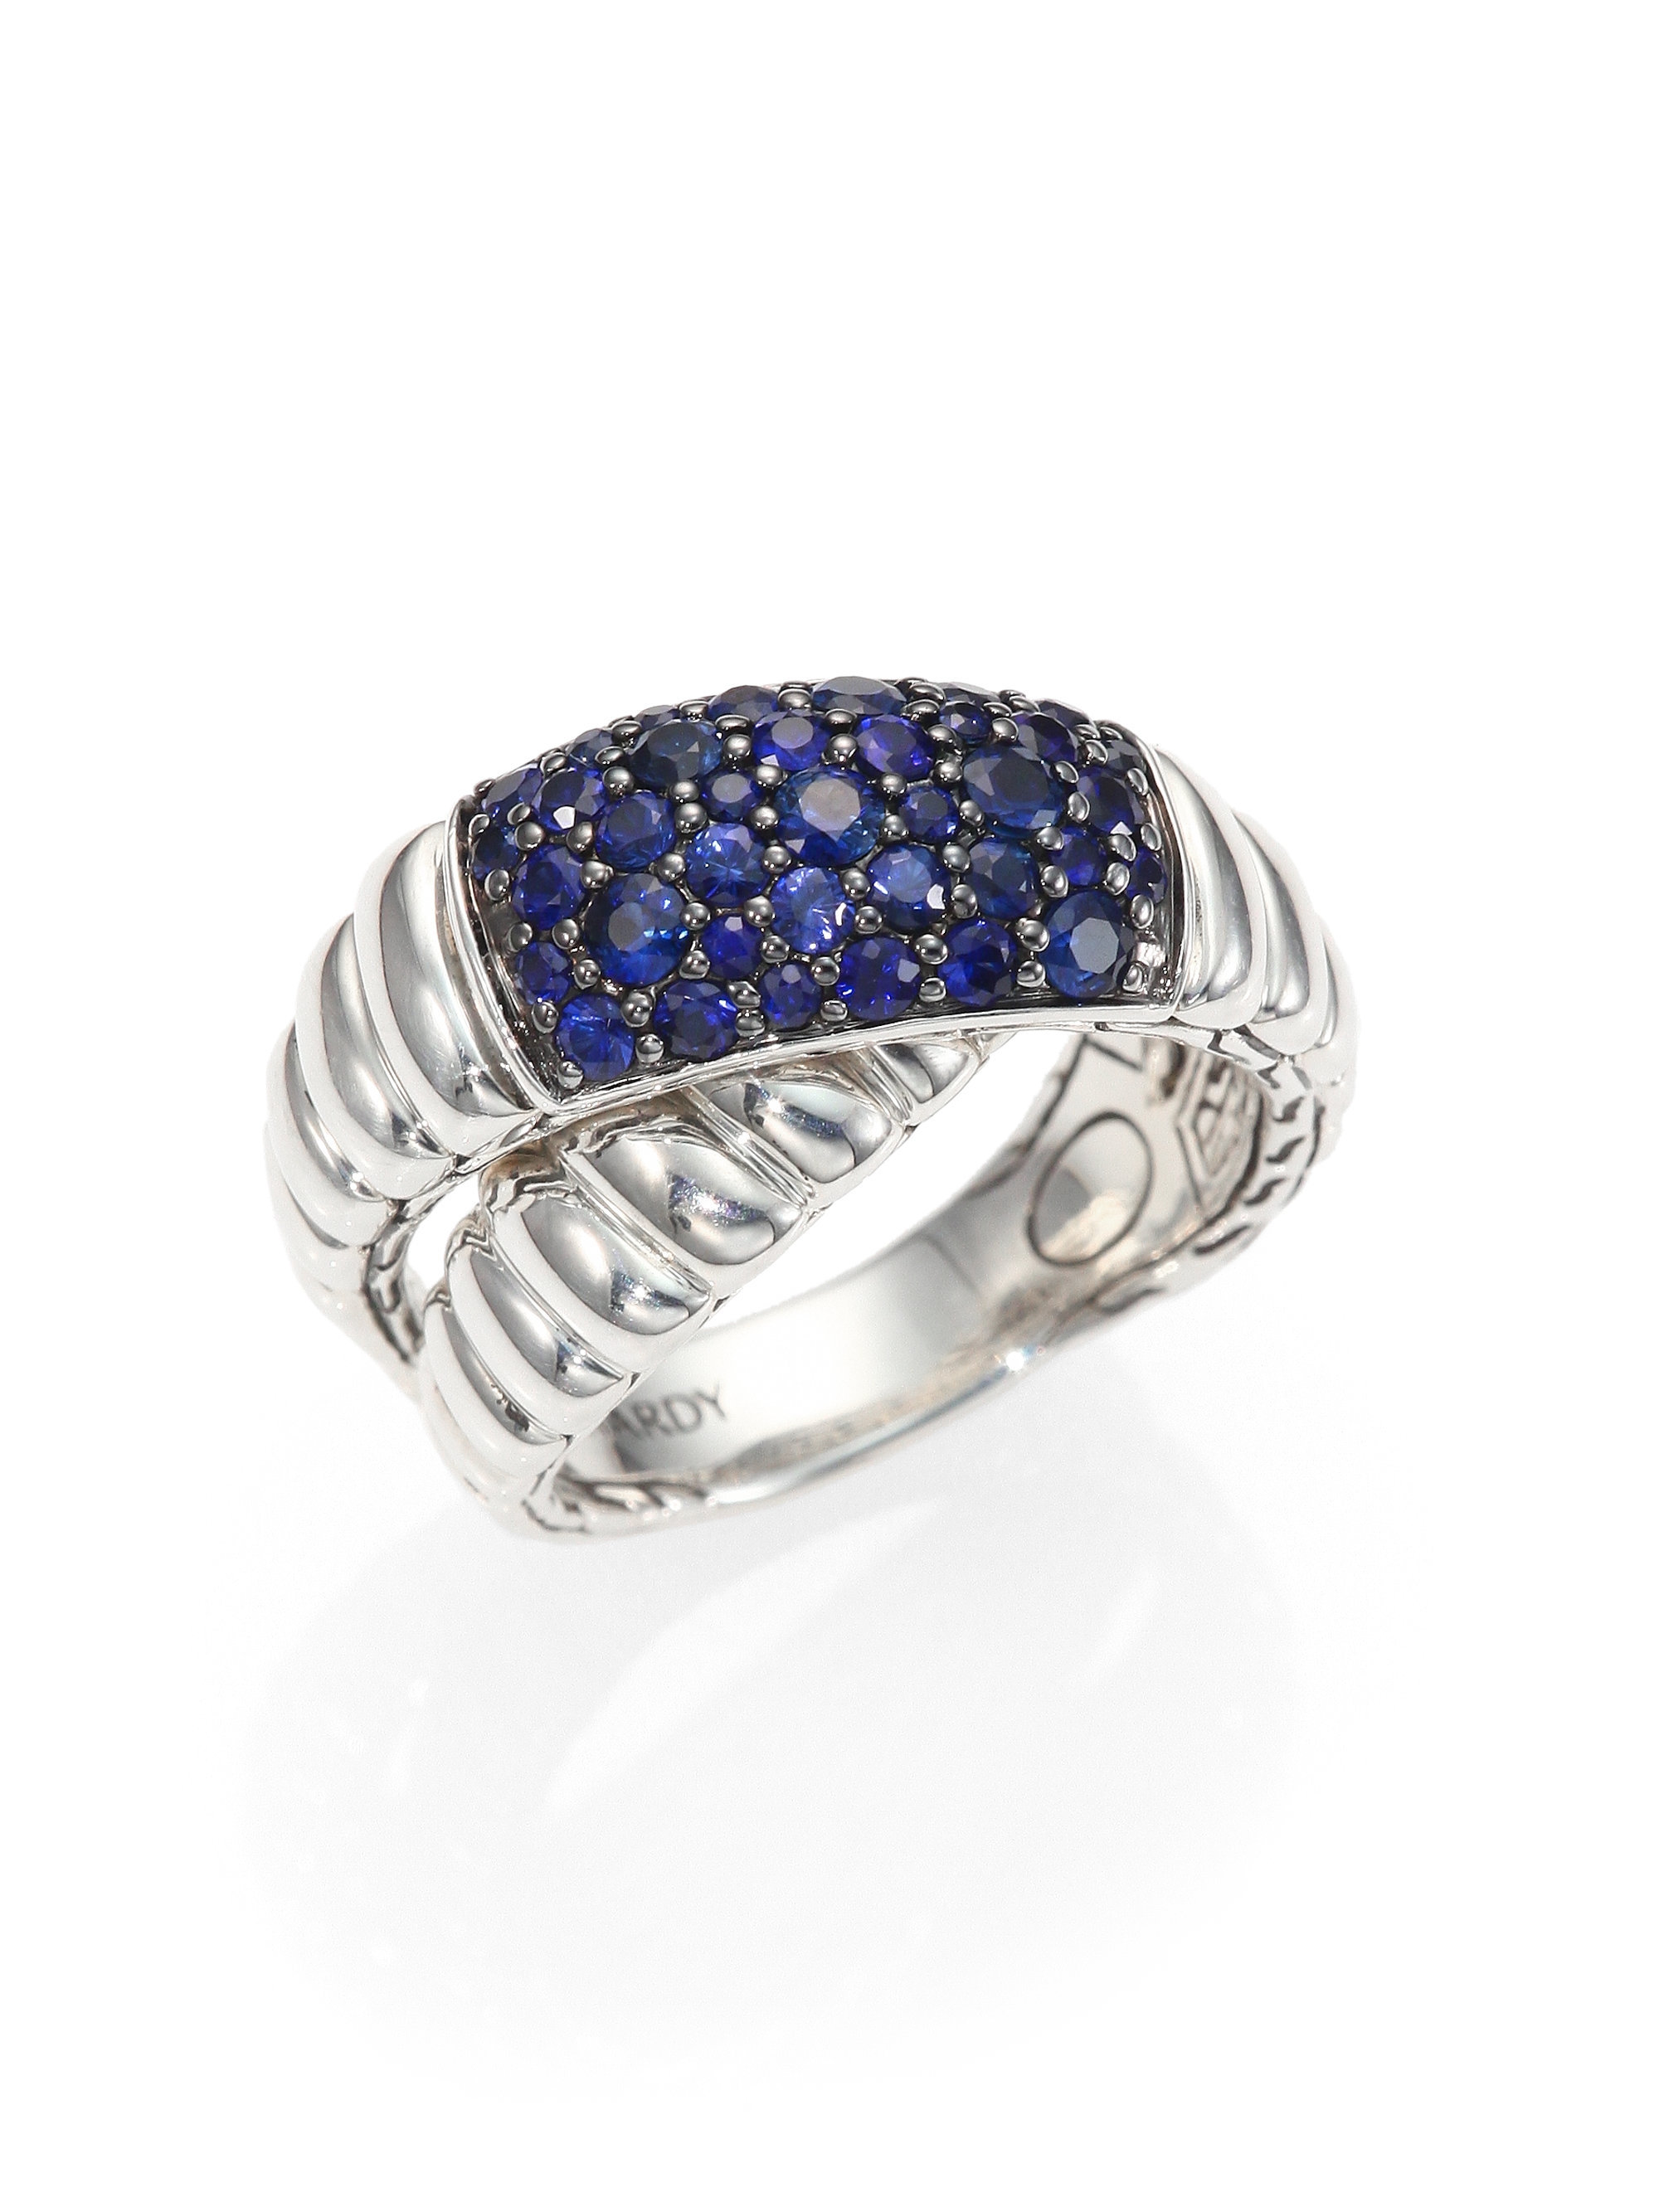 com ring jewelry free created silver watches miadora infinity topaz shipping and blue overstock sterling sapphire today product white